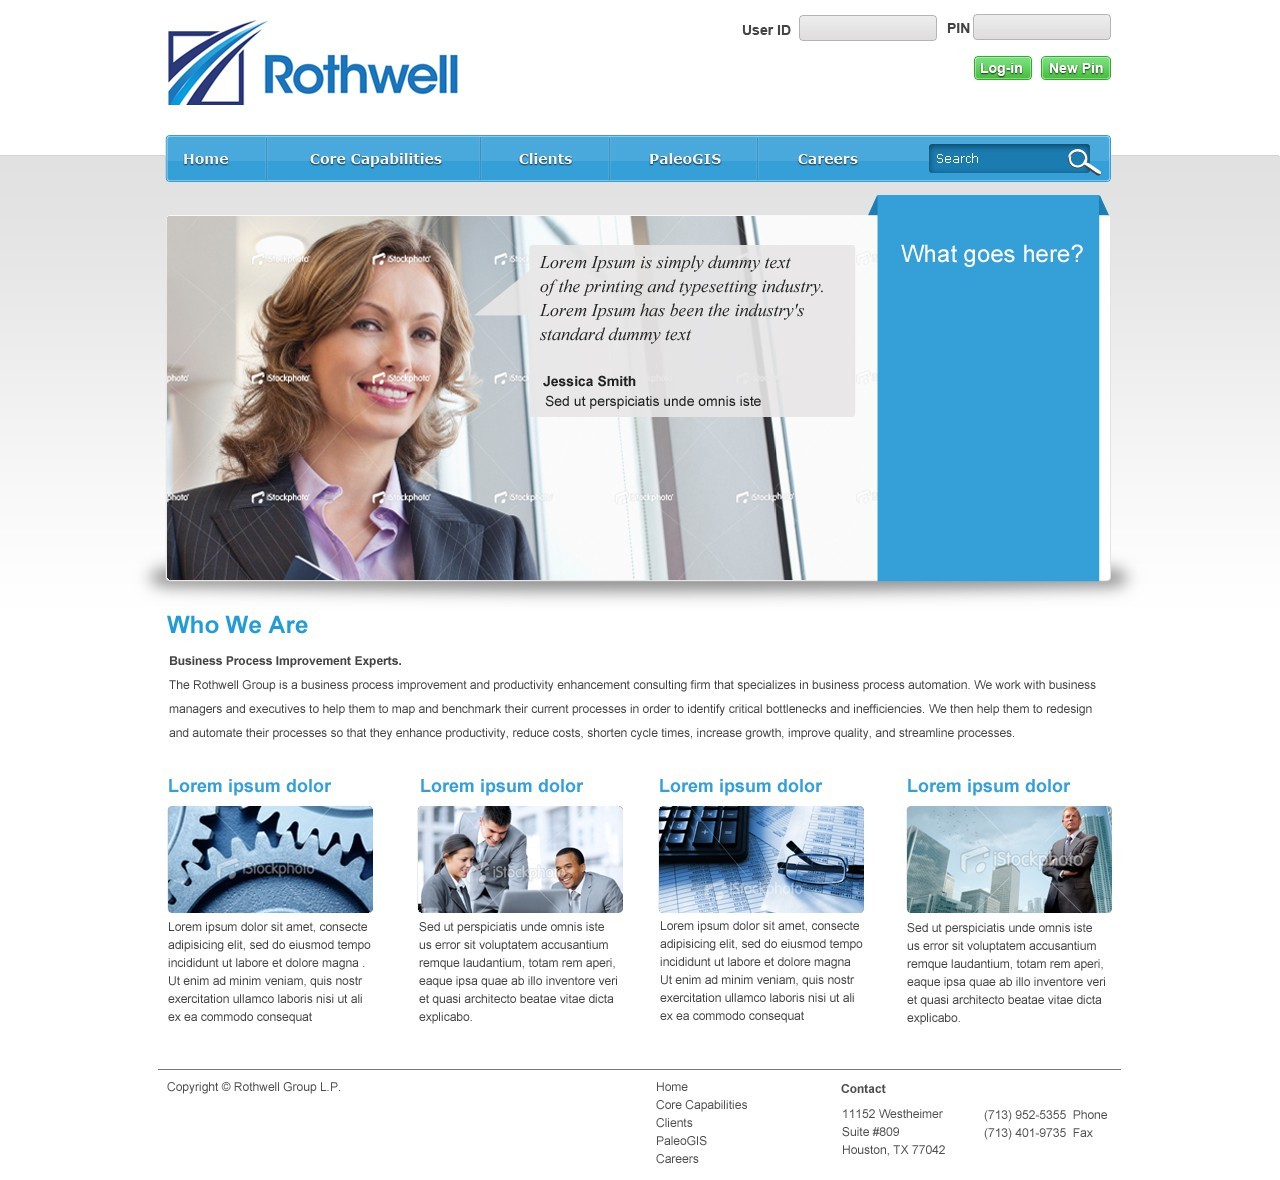 Help Rothwell with a new website design